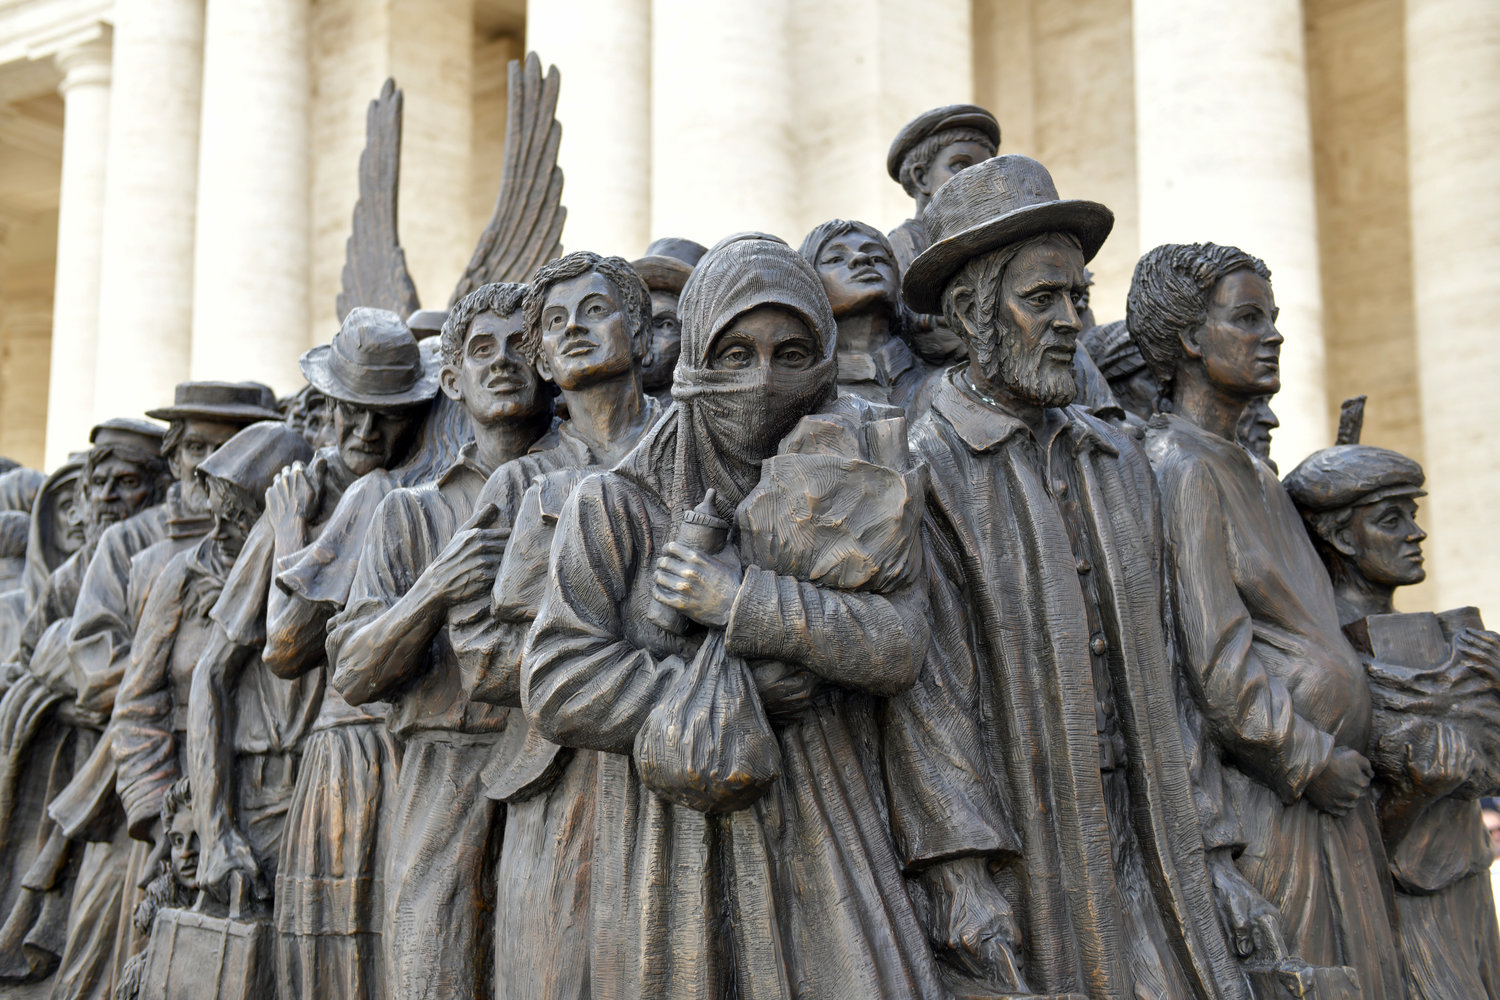 Migrants and refugees are pictured on a large bronze statue in St. Peter's Square at the Vatican Sept. 29, 2019. Pope Francis attended the unveiling of the statue after celebrating a Mass for World Day of Migrants and Refugees. (CNS photo/Paolo Galosi, pool) See POPE-MASS-MIGRANTS-REFUGEES Sept. 29, 2019.